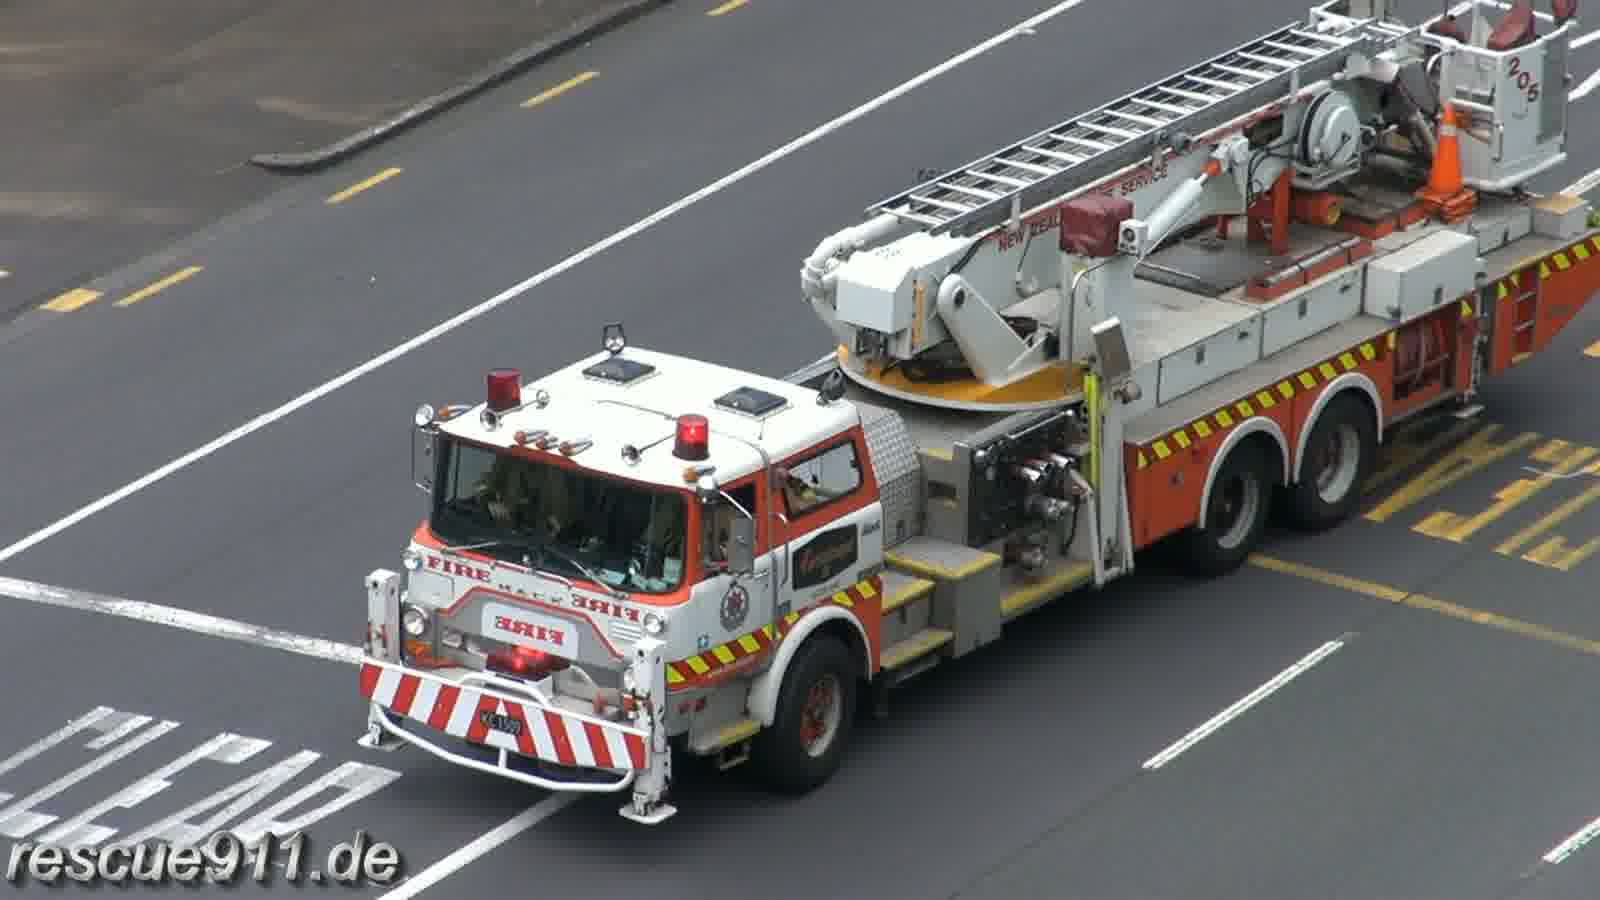 Aerial 205 New Zealand Fire Service Auckland City Fire Station (stream)